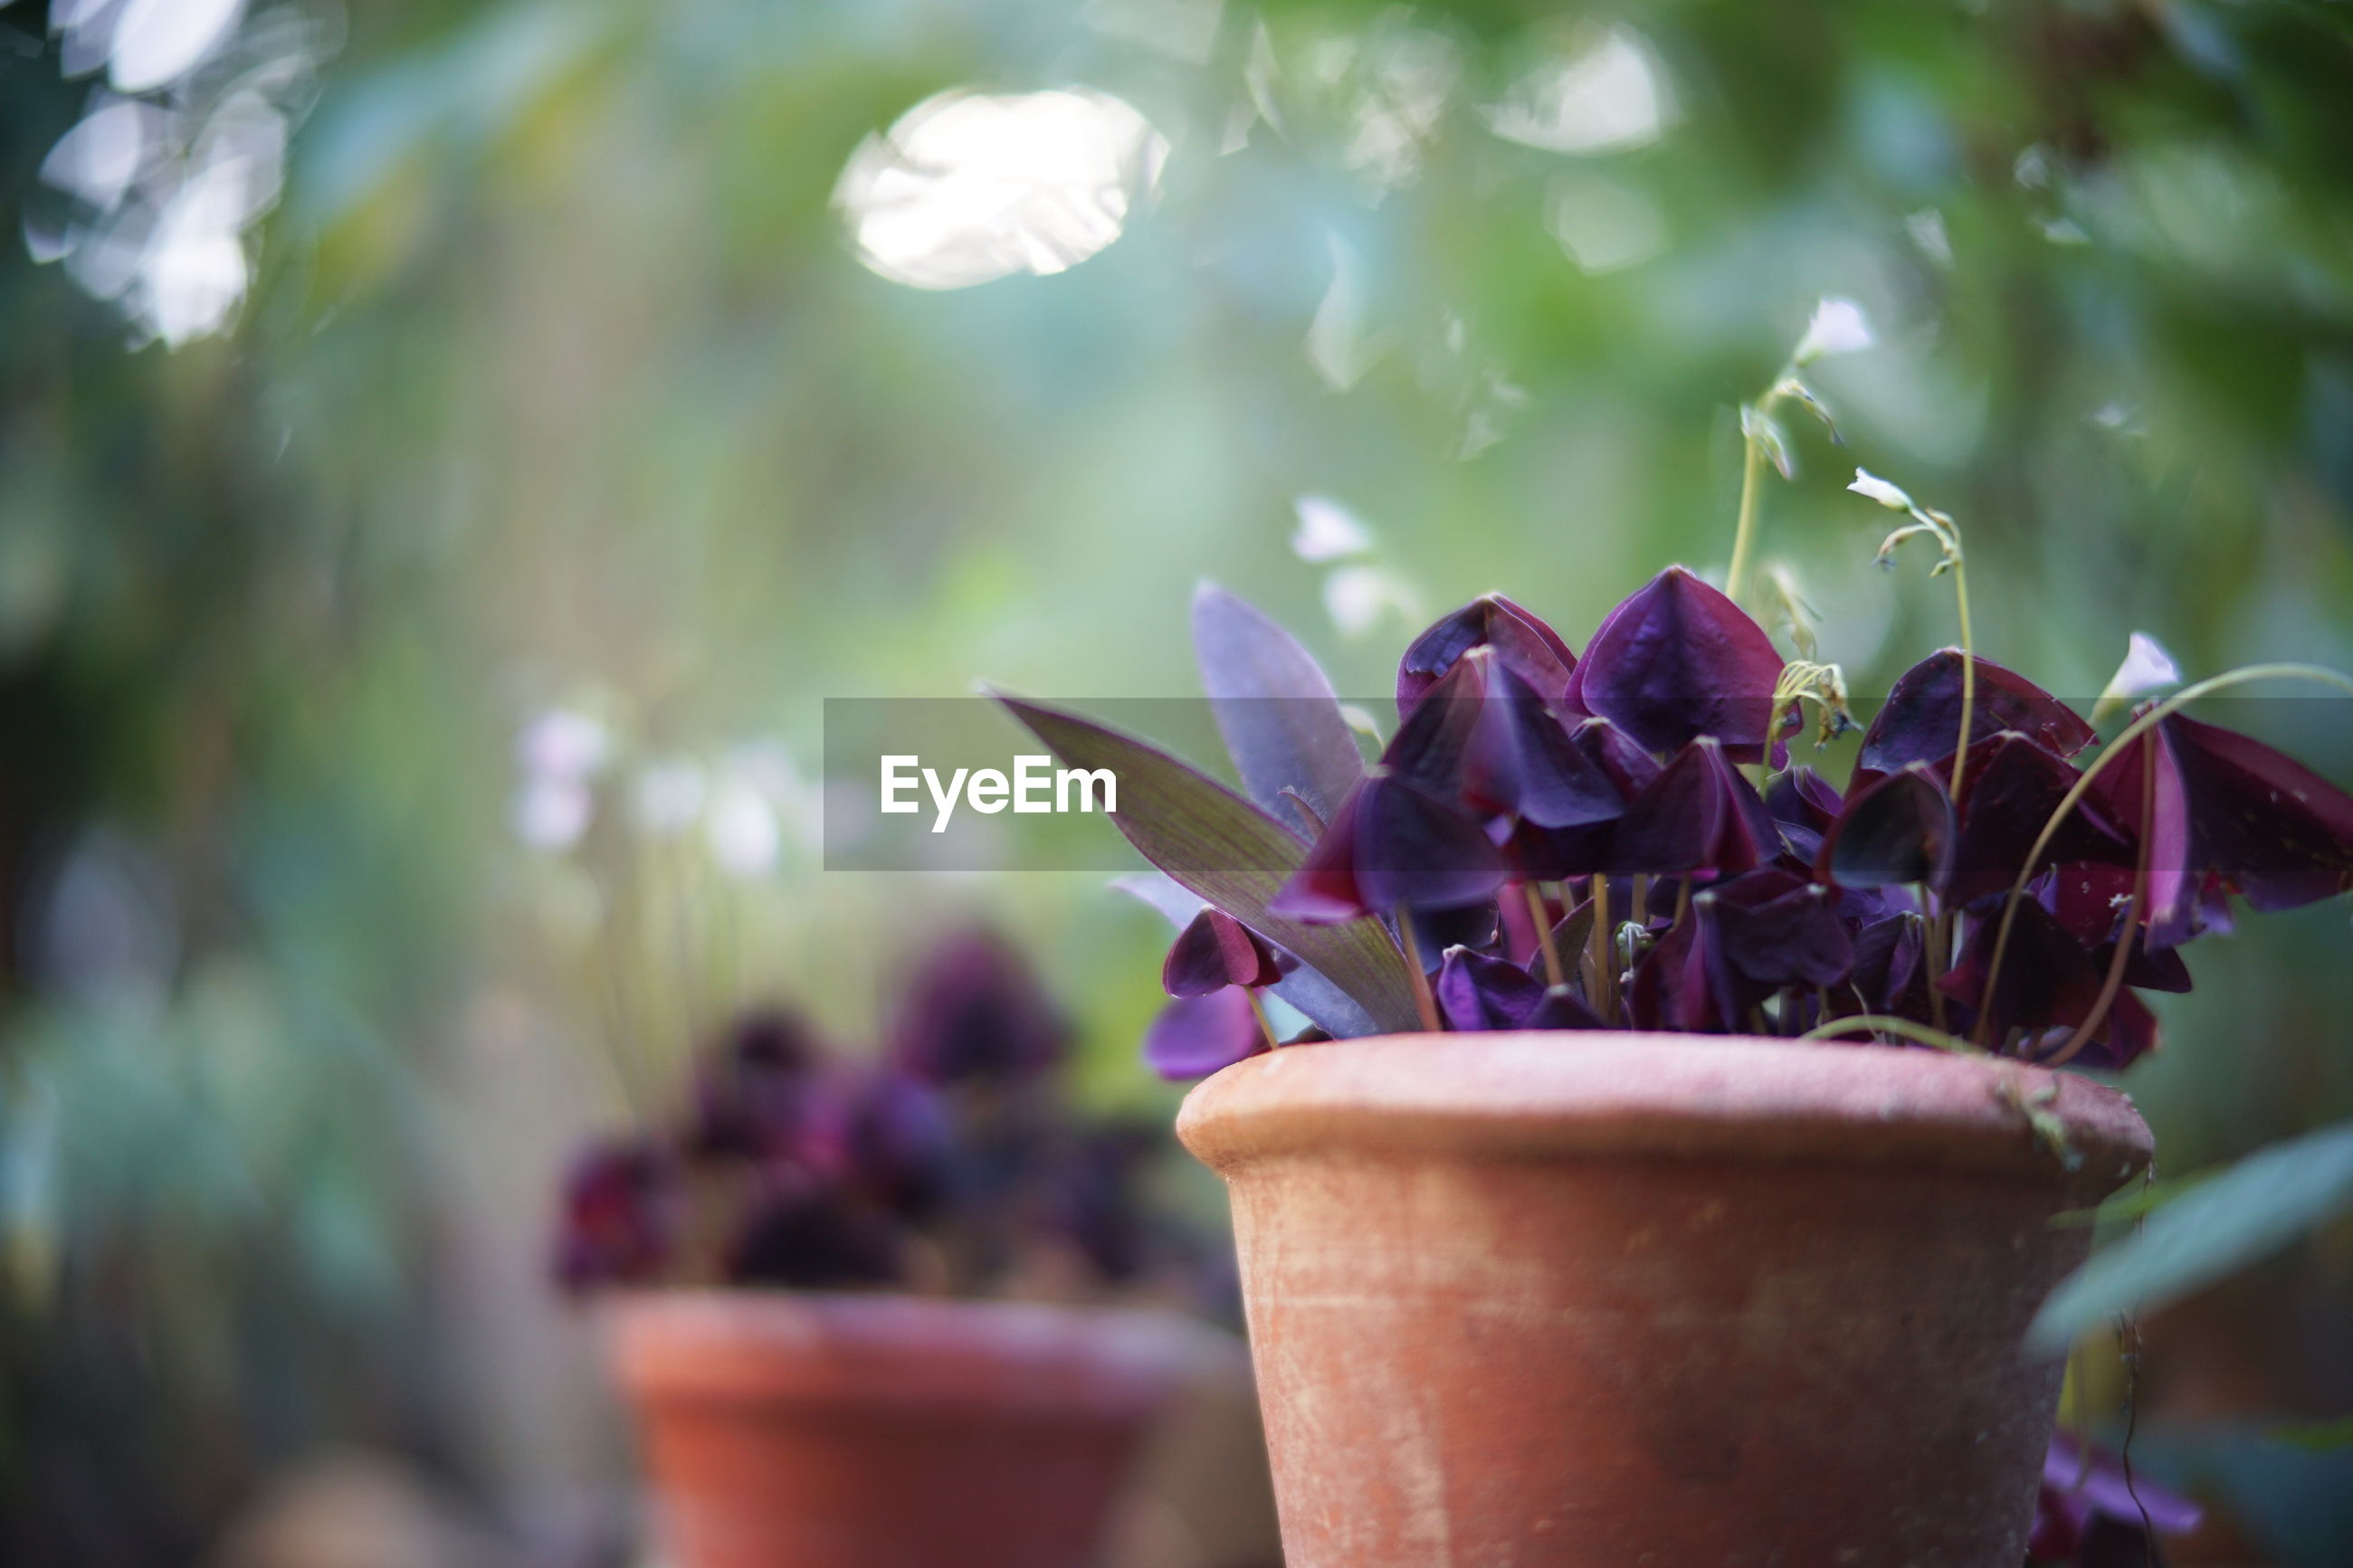 CLOSE-UP OF PURPLE FLOWERING PLANT ON POTTED PLANTS